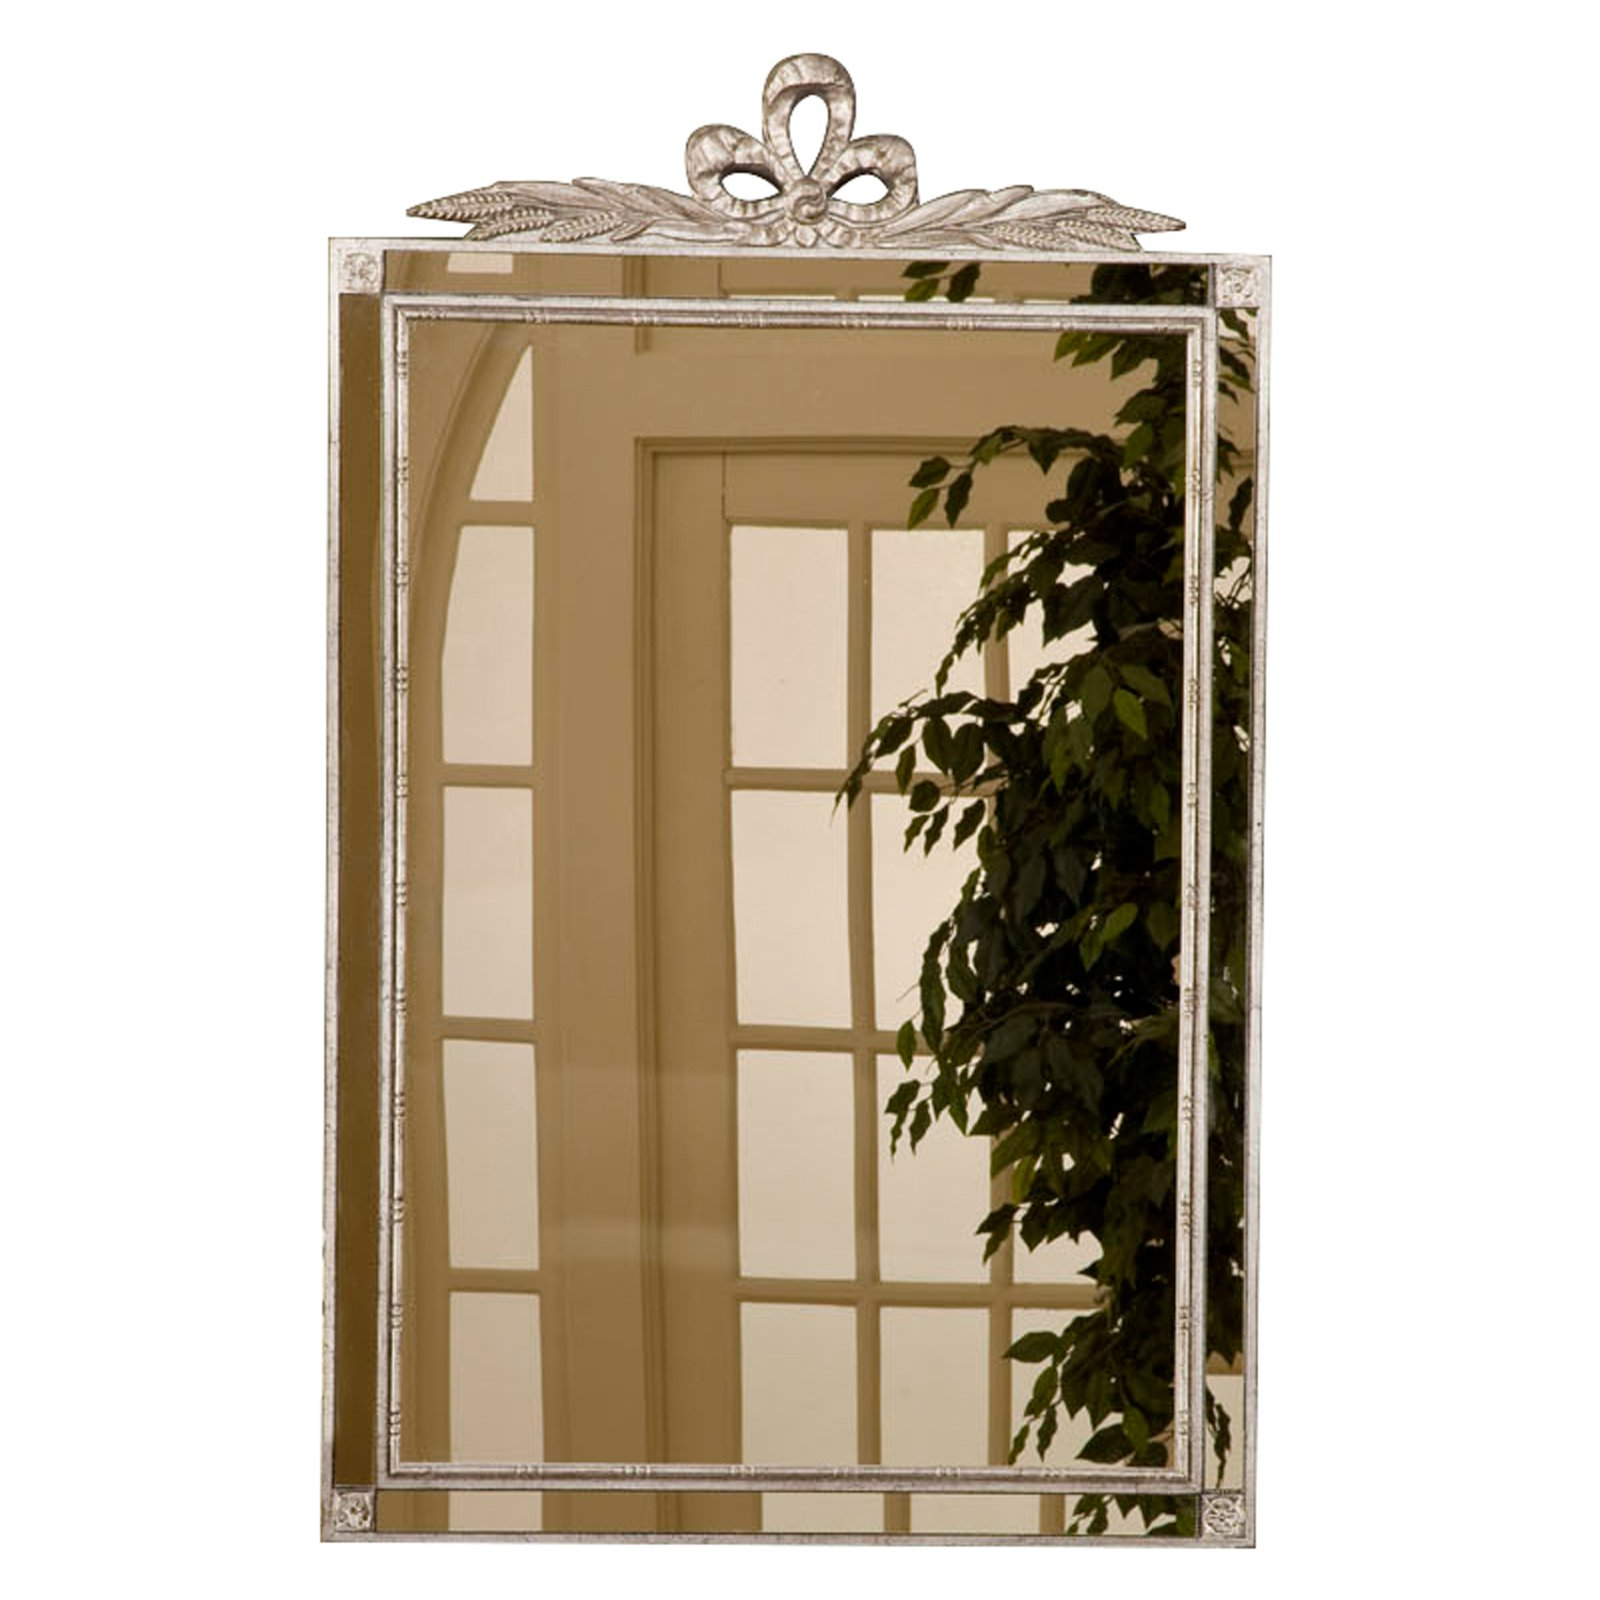 Hickory Manor House Old World Wall Mirror with Side Glass - 20.58W x 32.75H in.